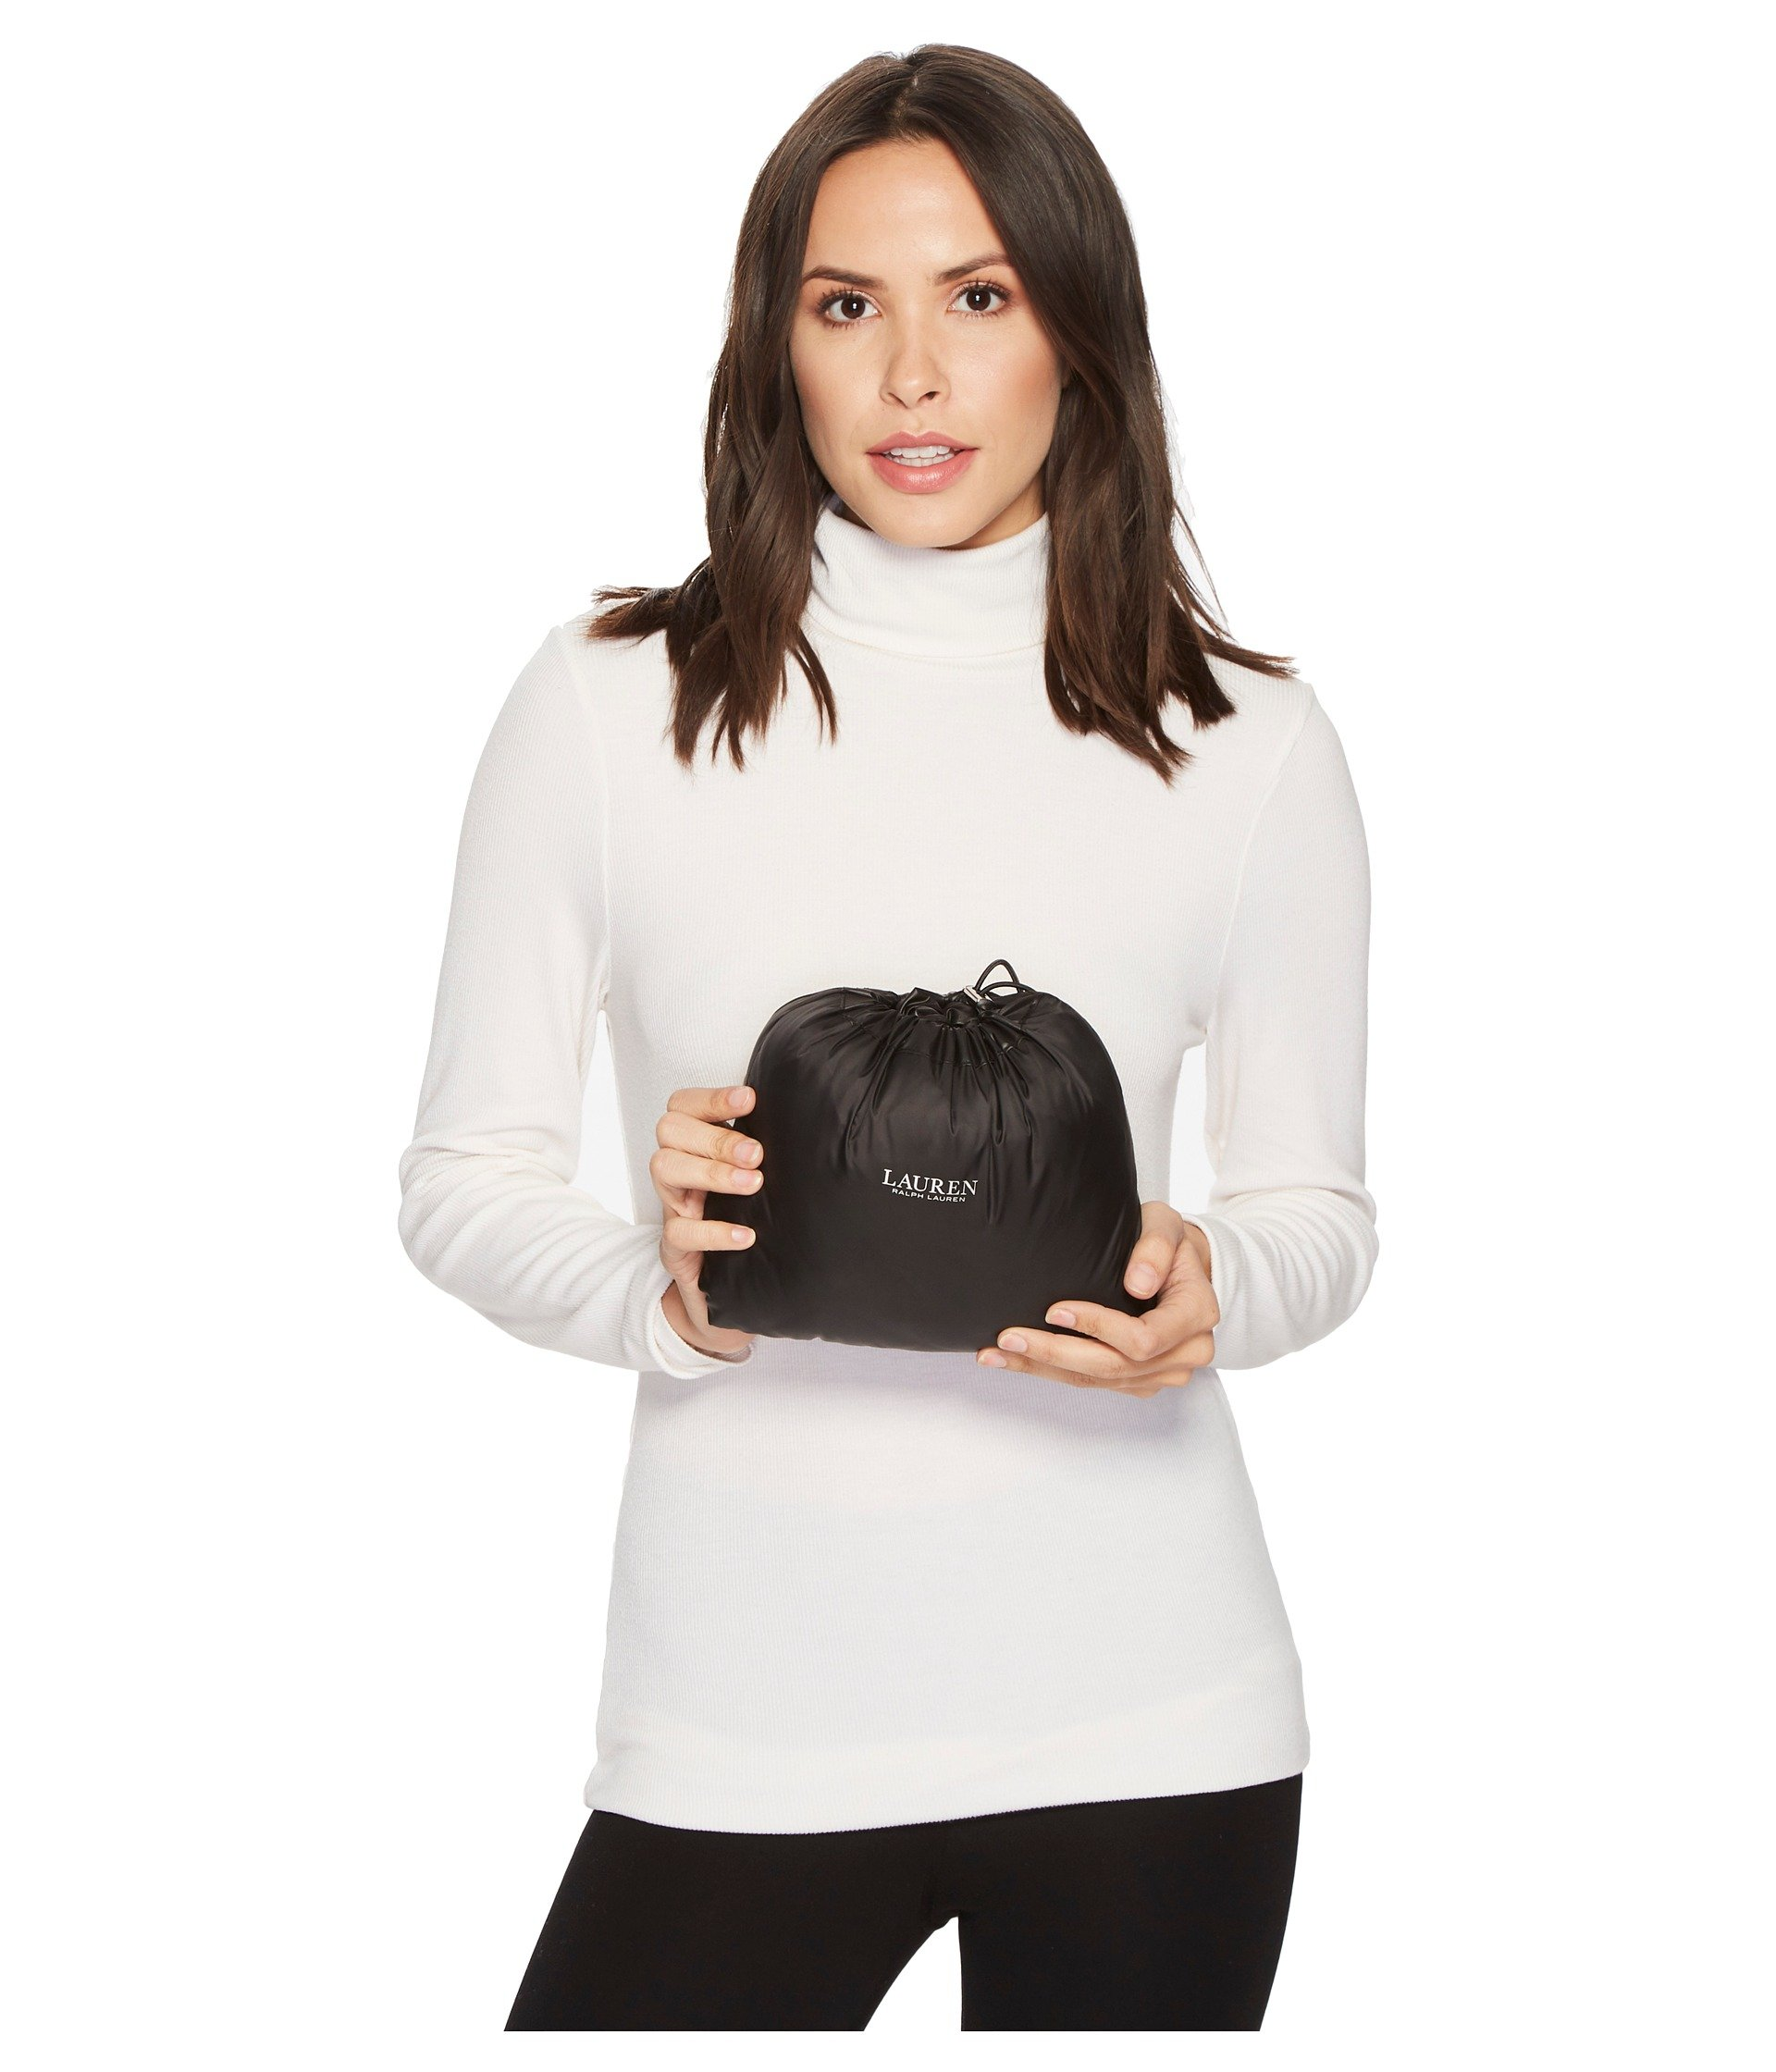 Lauren Shaped Packable Packable Black Ralph Ralph Shaped Packable Shaped Black Shaped Black Packable Lauren Ralph Ralph Lauren Lauren wOx4q5C7rw